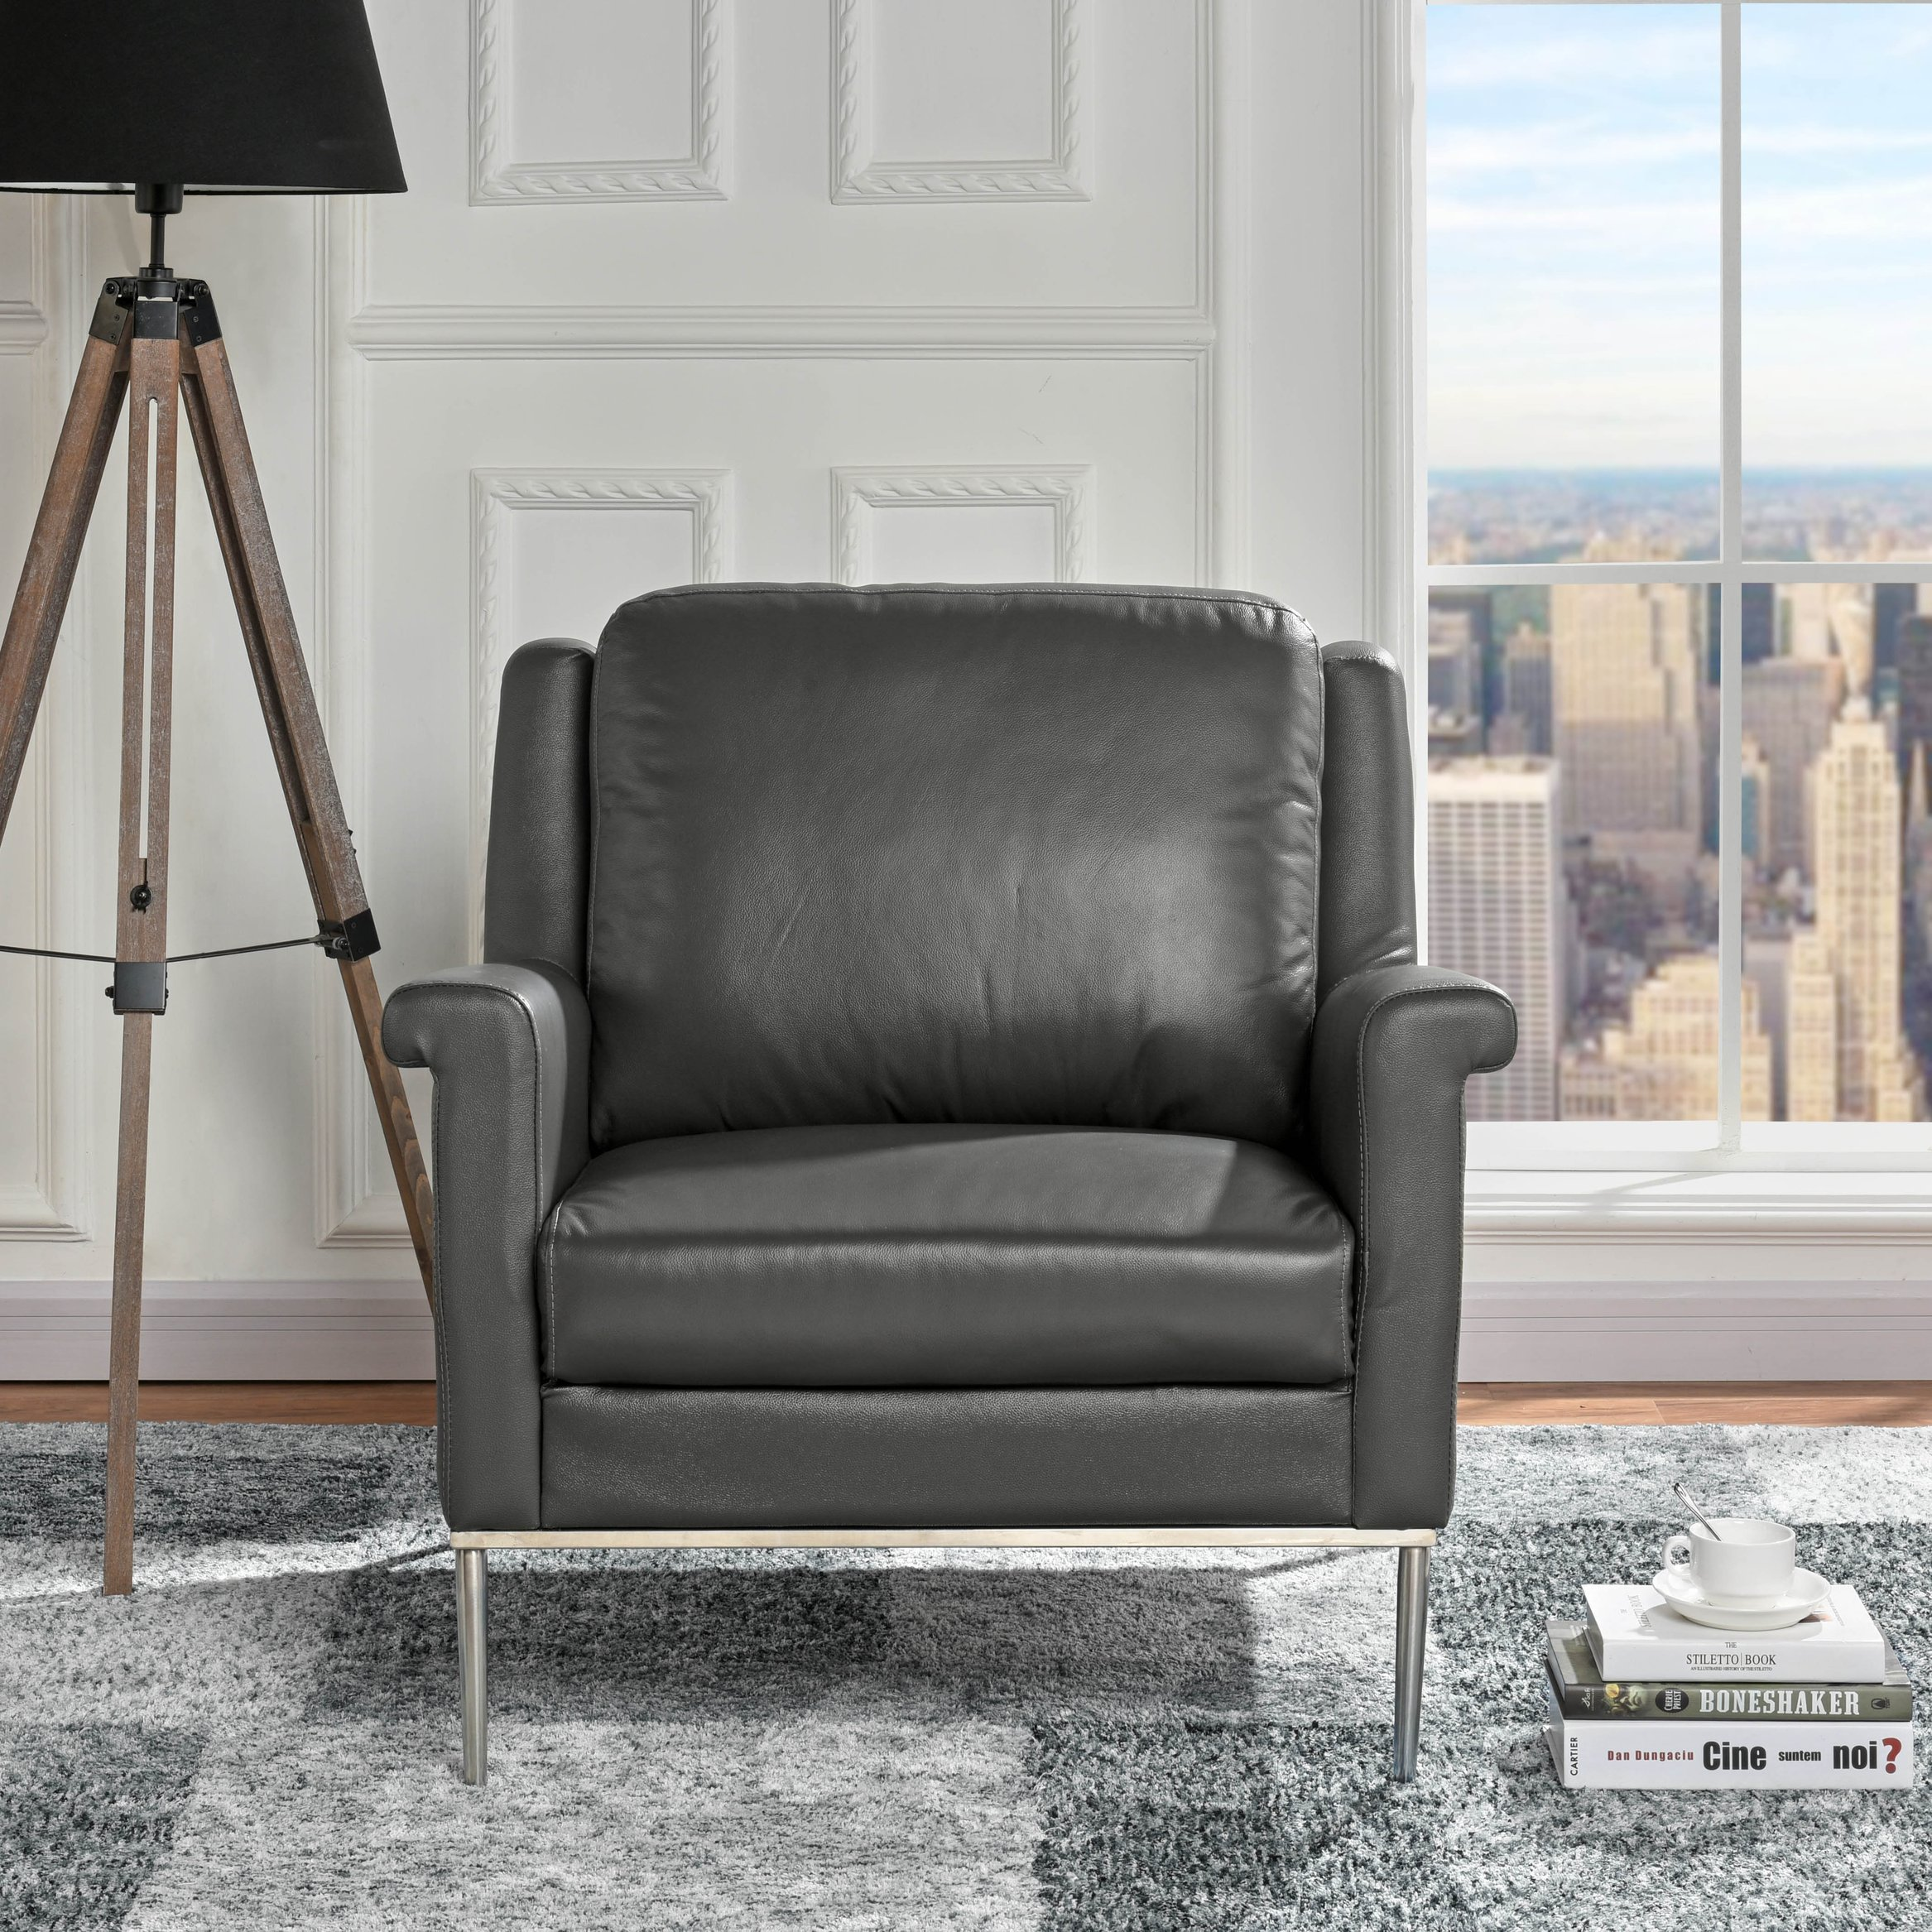 Pleasing Details About Classic Living Room Leather Armchair Accent Office Chair Grey Gmtry Best Dining Table And Chair Ideas Images Gmtryco